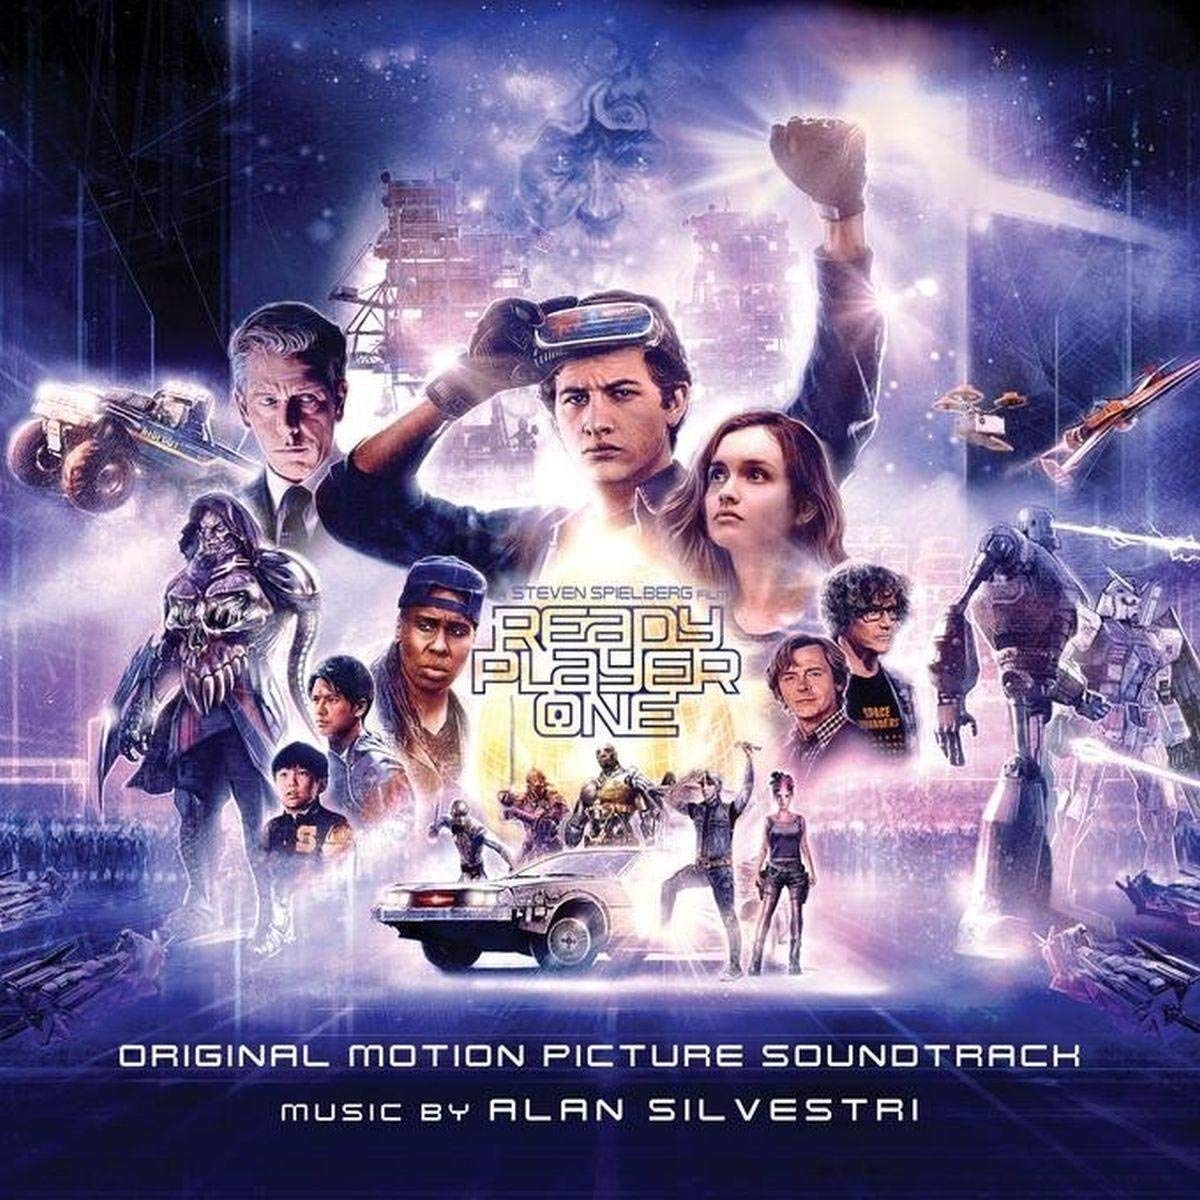 Alan Silvestri. Ready Player One. Original Motion Picture Soundtrack (2 CD) ховард шор howard shore the hobbit an unexpected journey original motion picture soundtrack 2 cd